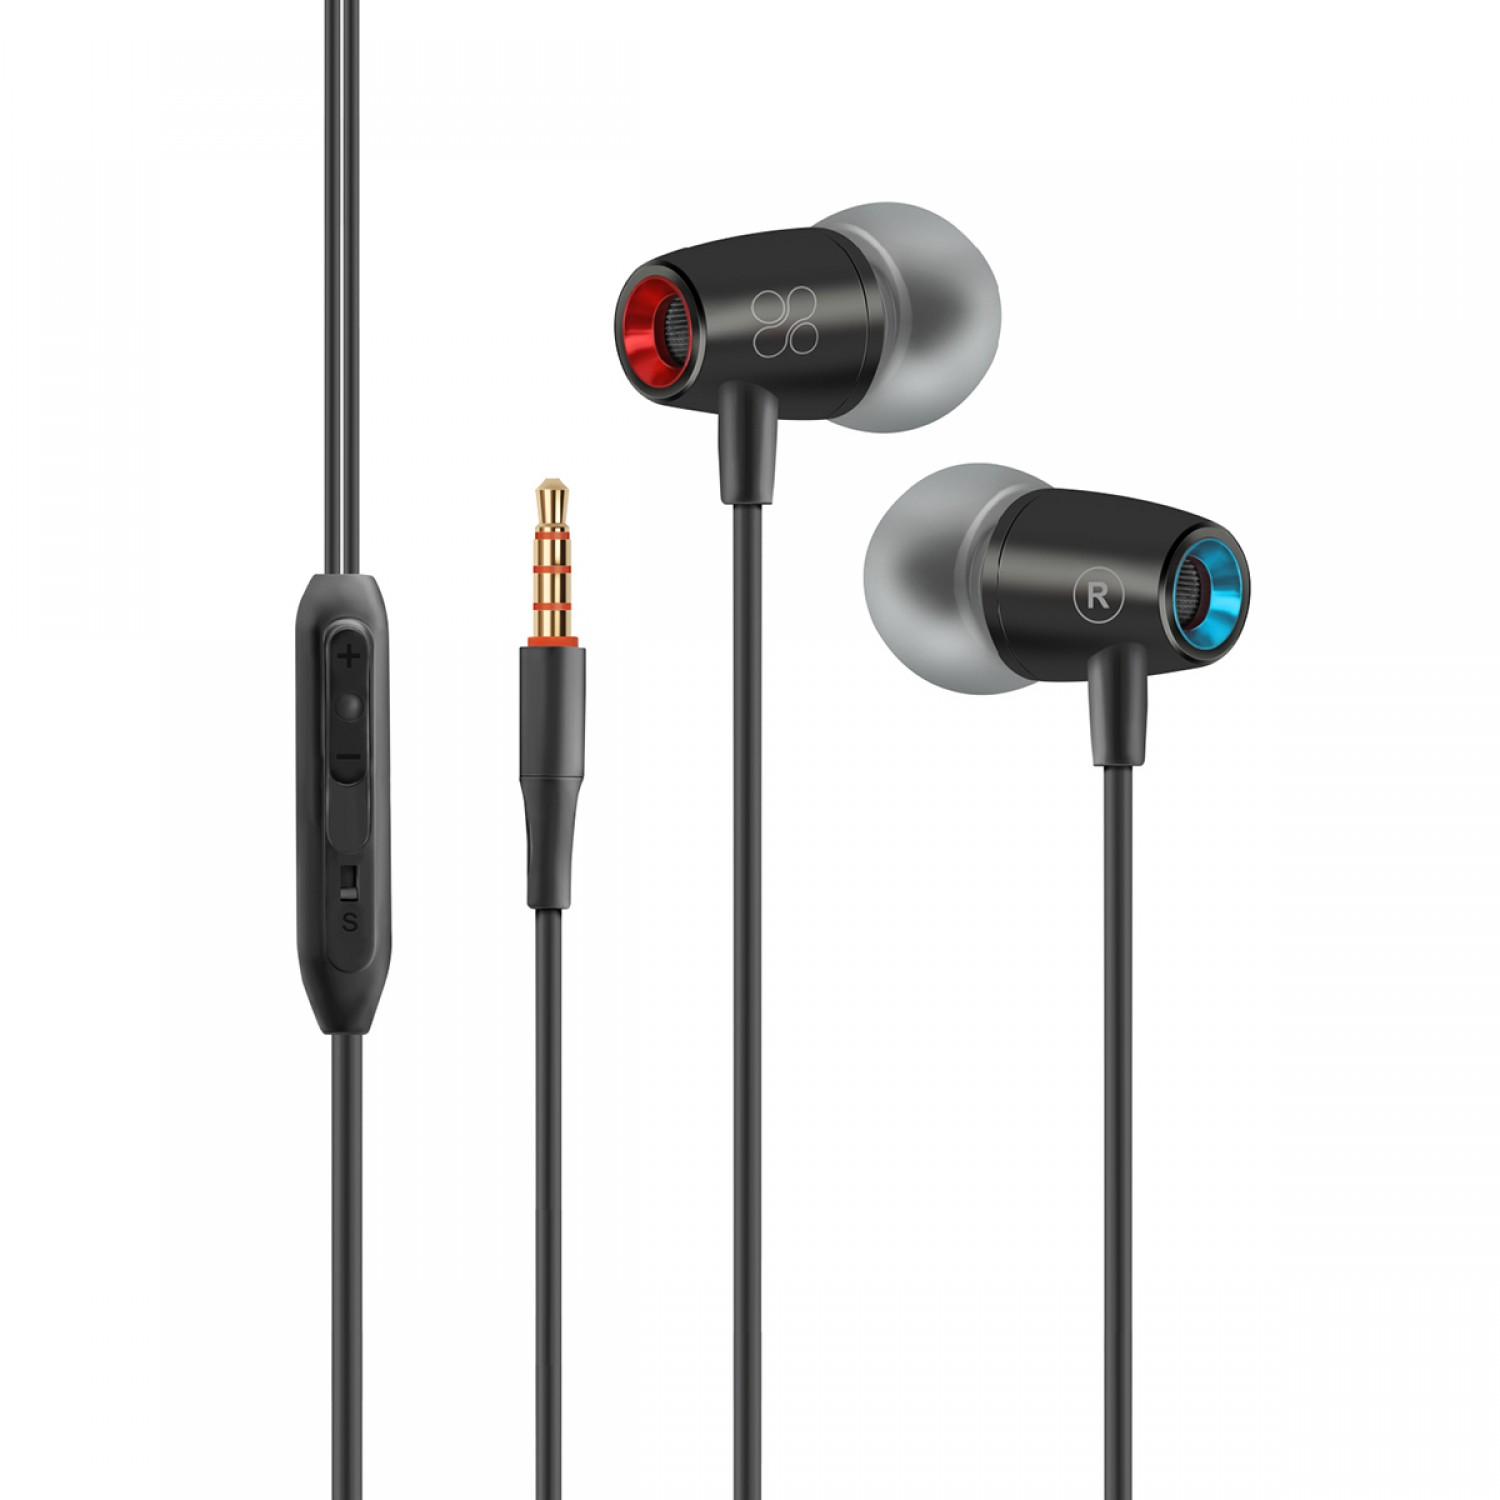 Promate Earphones, Dynamic In-Ear Noise-Isolating Earbuds Headphones with Built-In Microphone, 3.5mm Jack, Tangle Free Cord and Volume Control for Smartphones, Tablets, Laptops, TuneBuds-1 Black